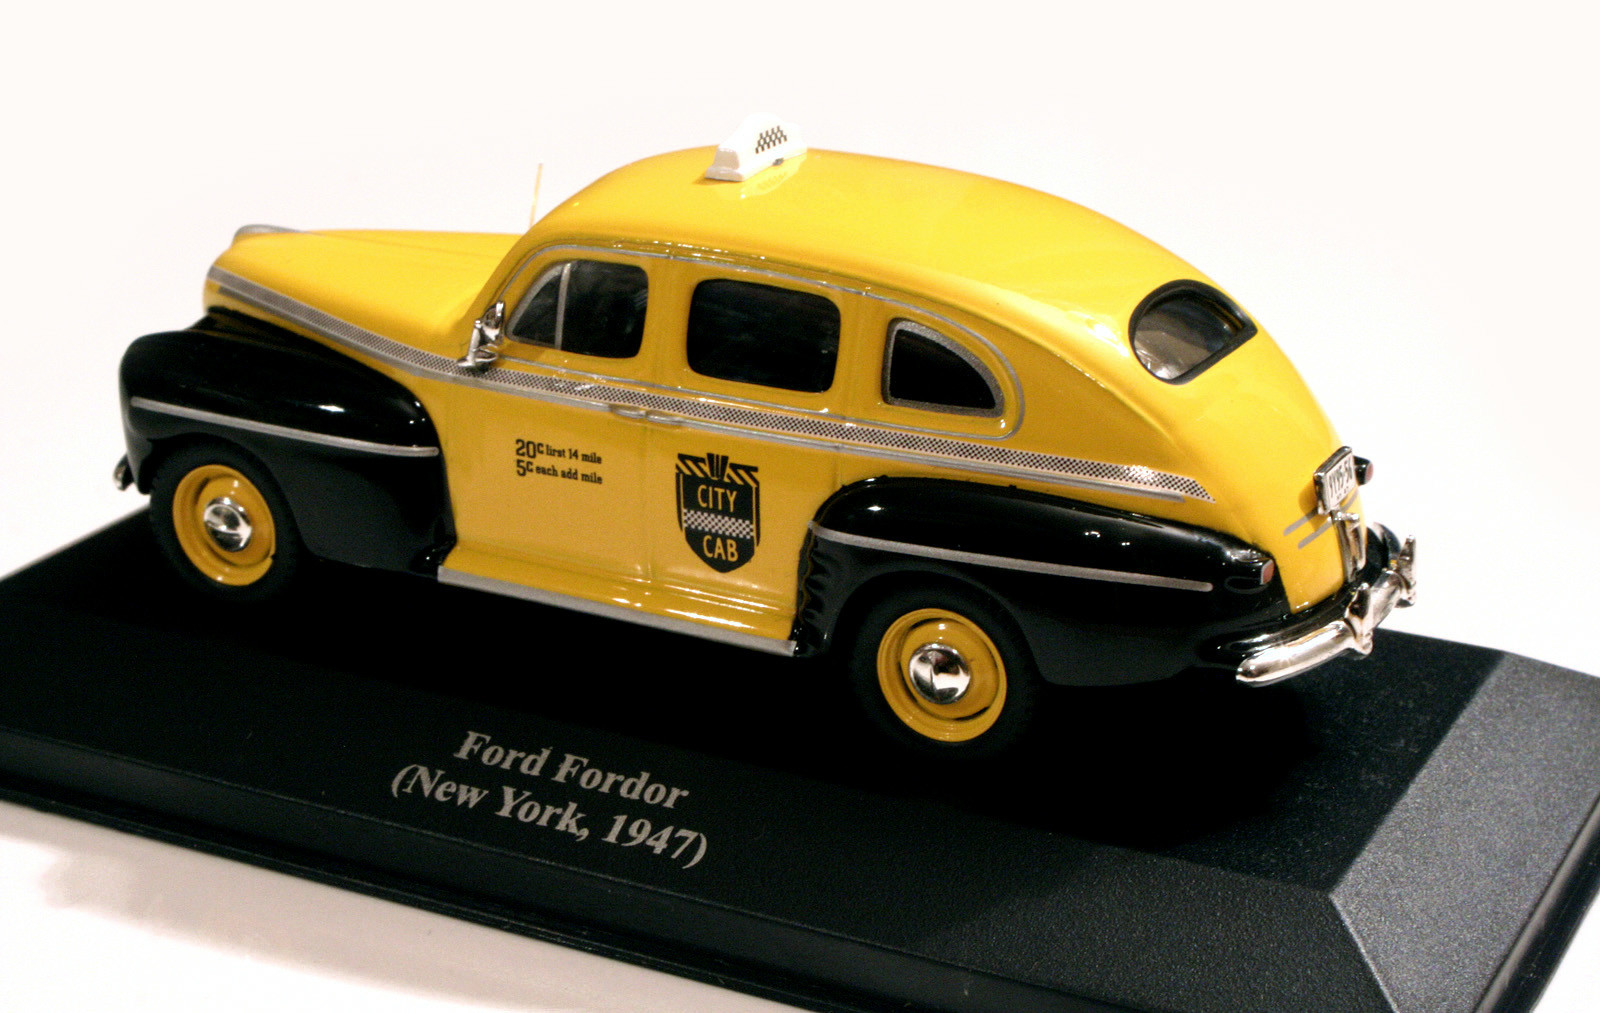 Ford Fordor '46 NYC Cab